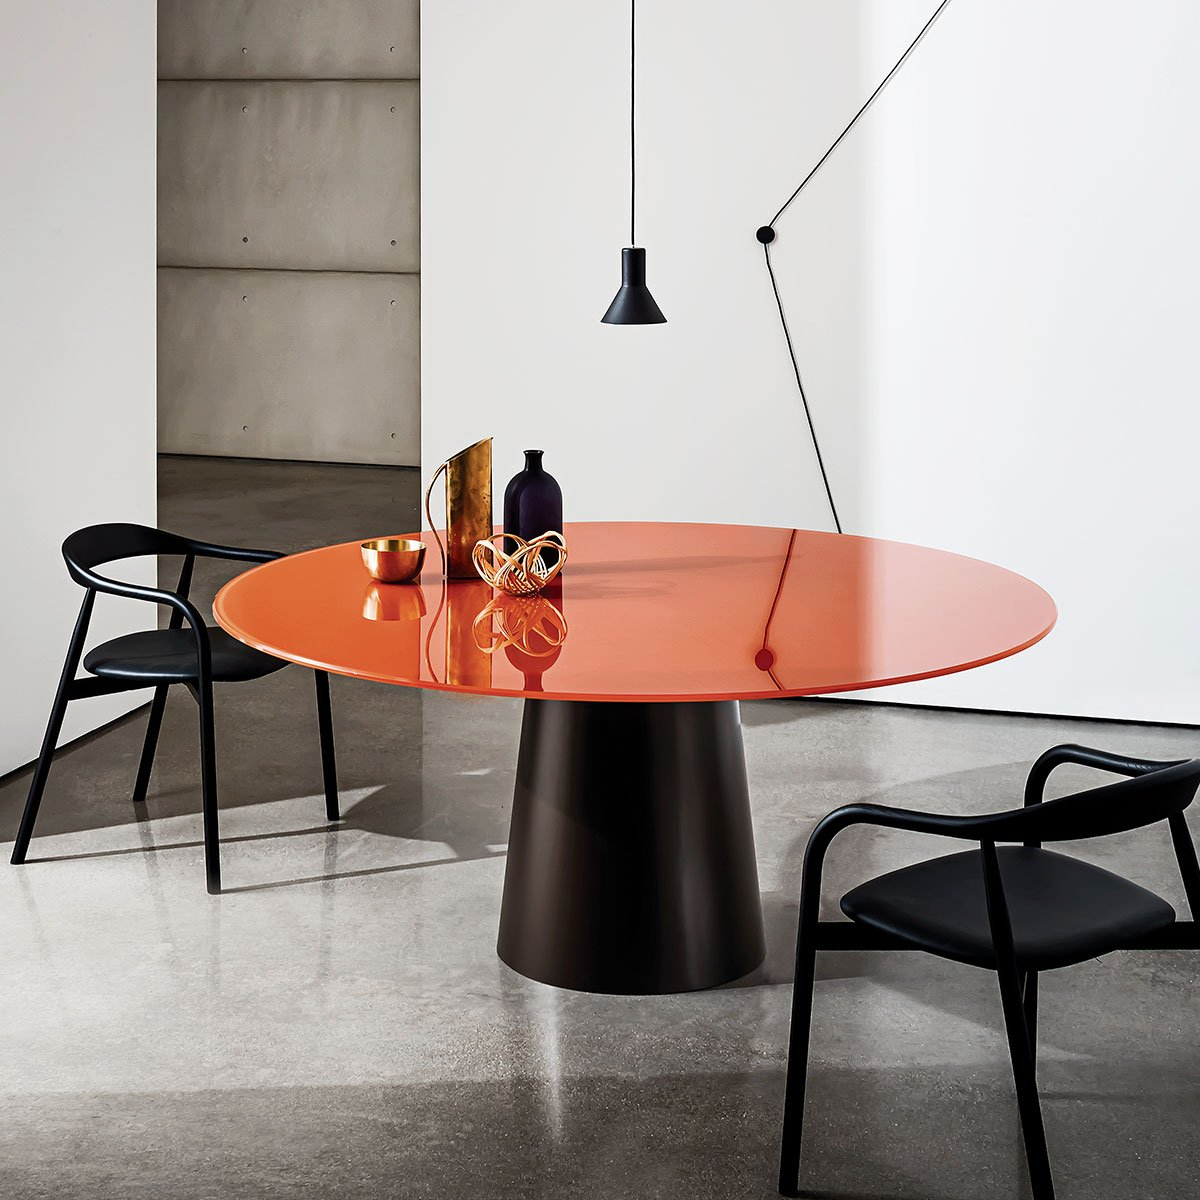 Totem Round Glass Dining Table Klarity Glass Furniture